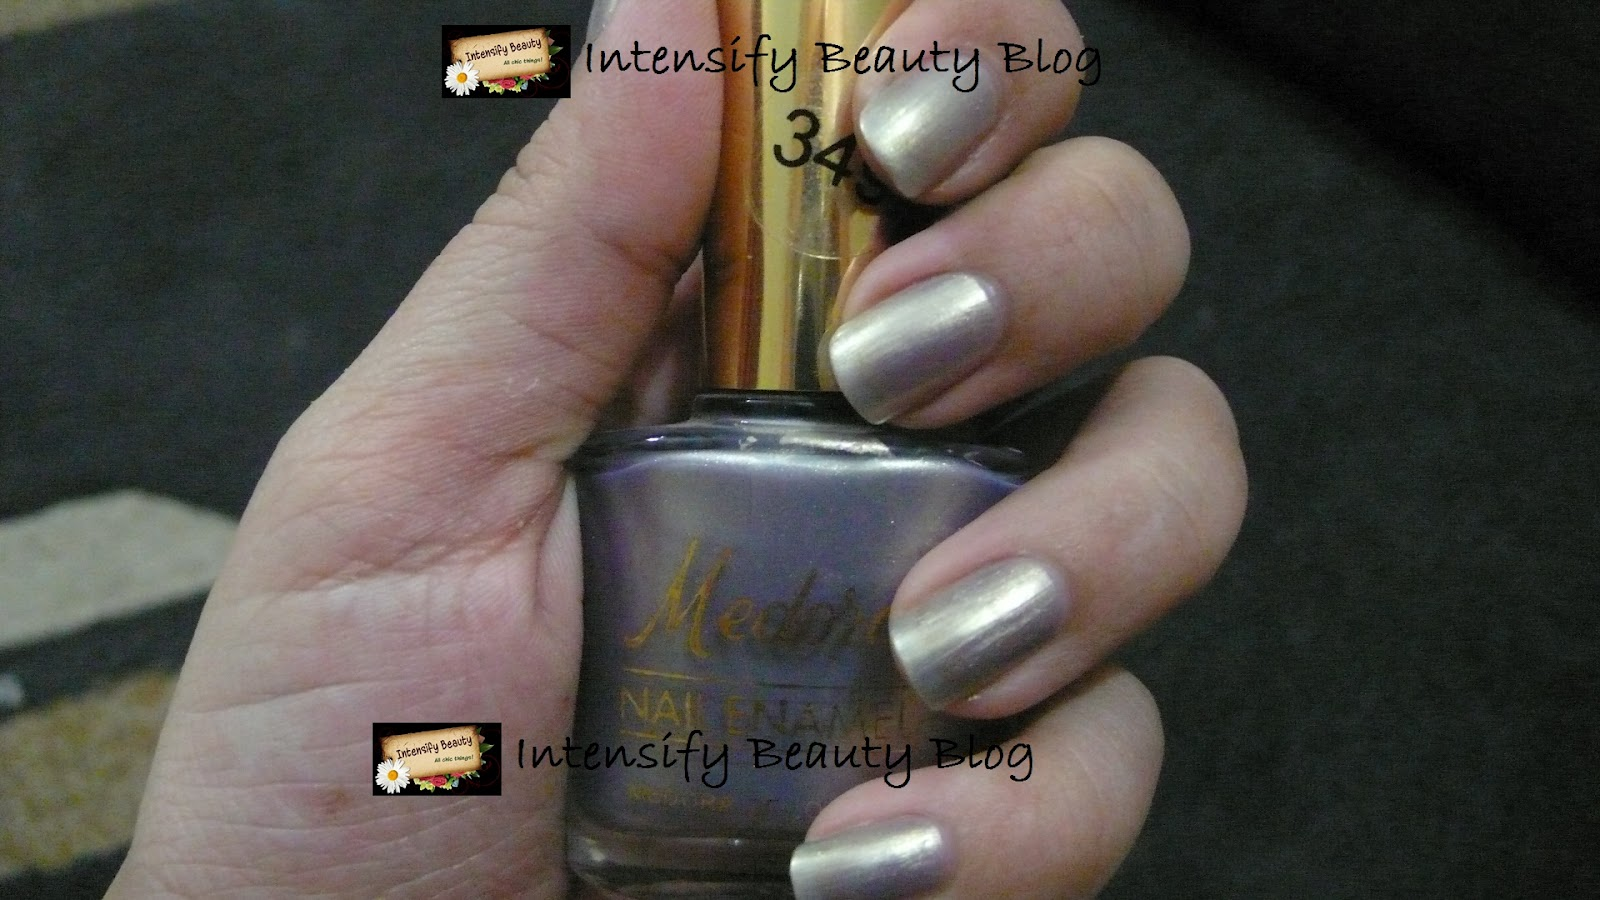 Medore Nail Color in 349 - Intensify Beauty Blog